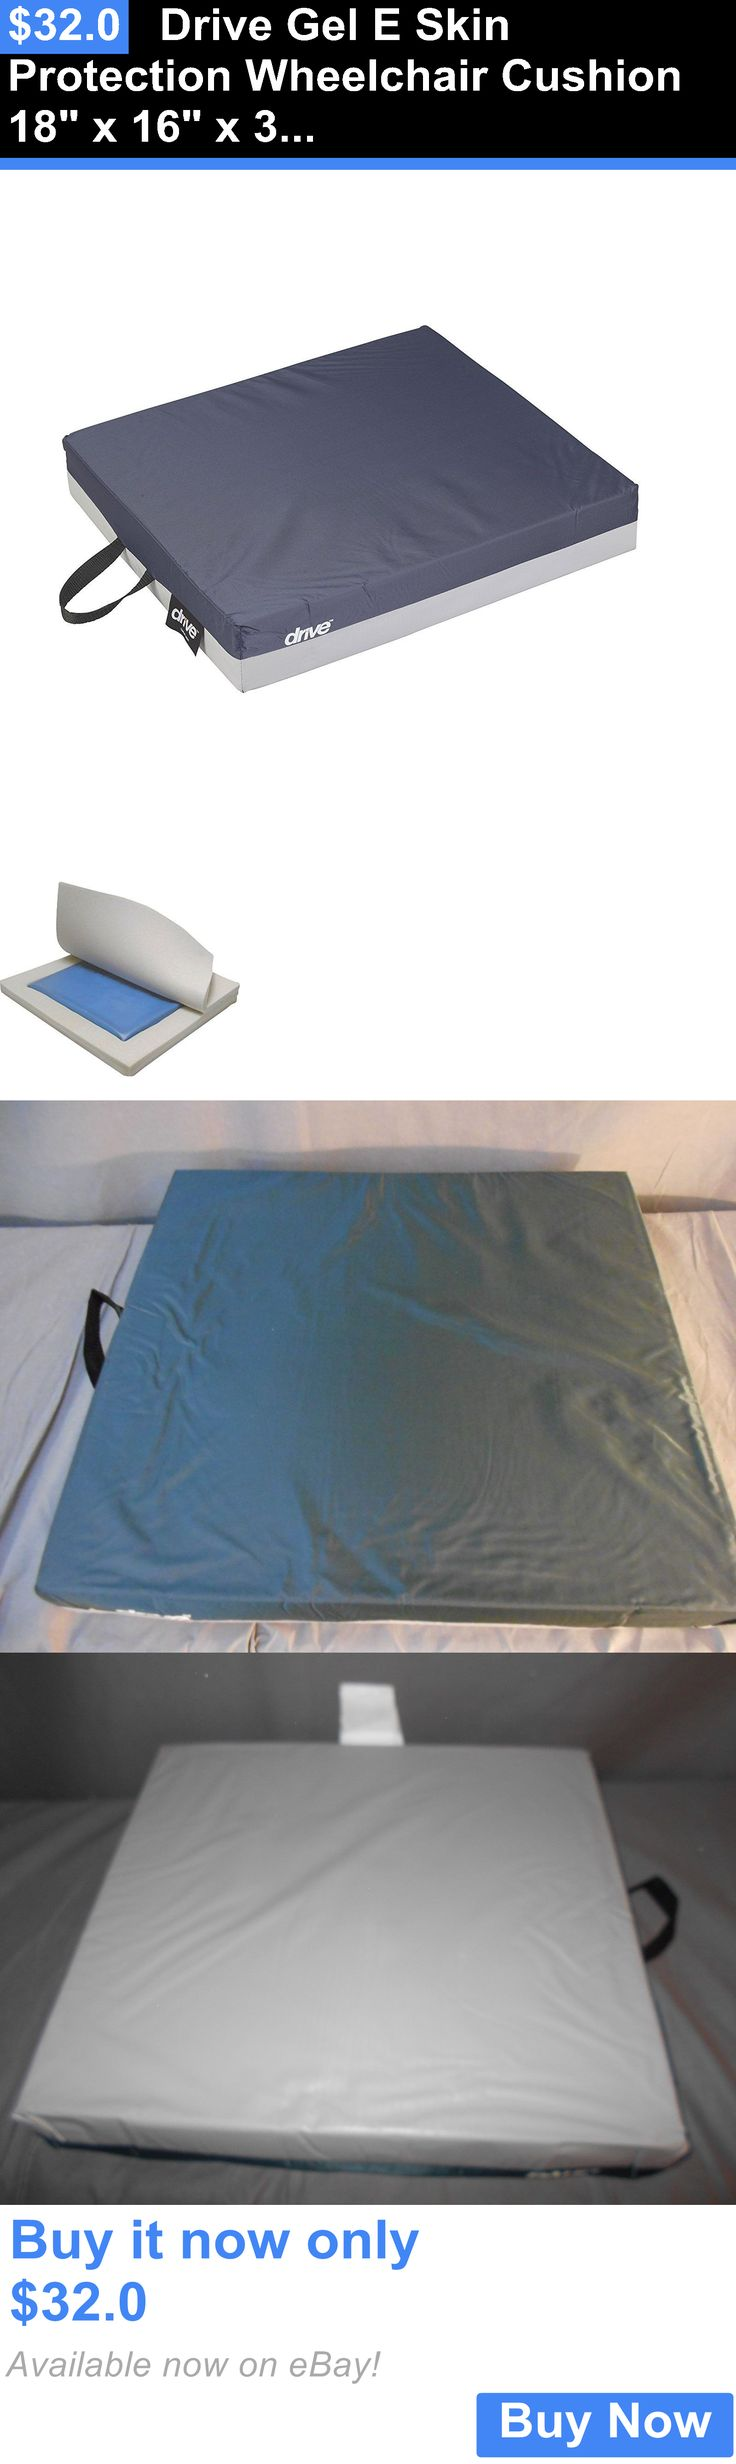 Accessories: Drive Gel E Skin Protection Wheelchair Cushion 18 X 16 X 3 (Open Box) BUY IT NOW ONLY: $32.0